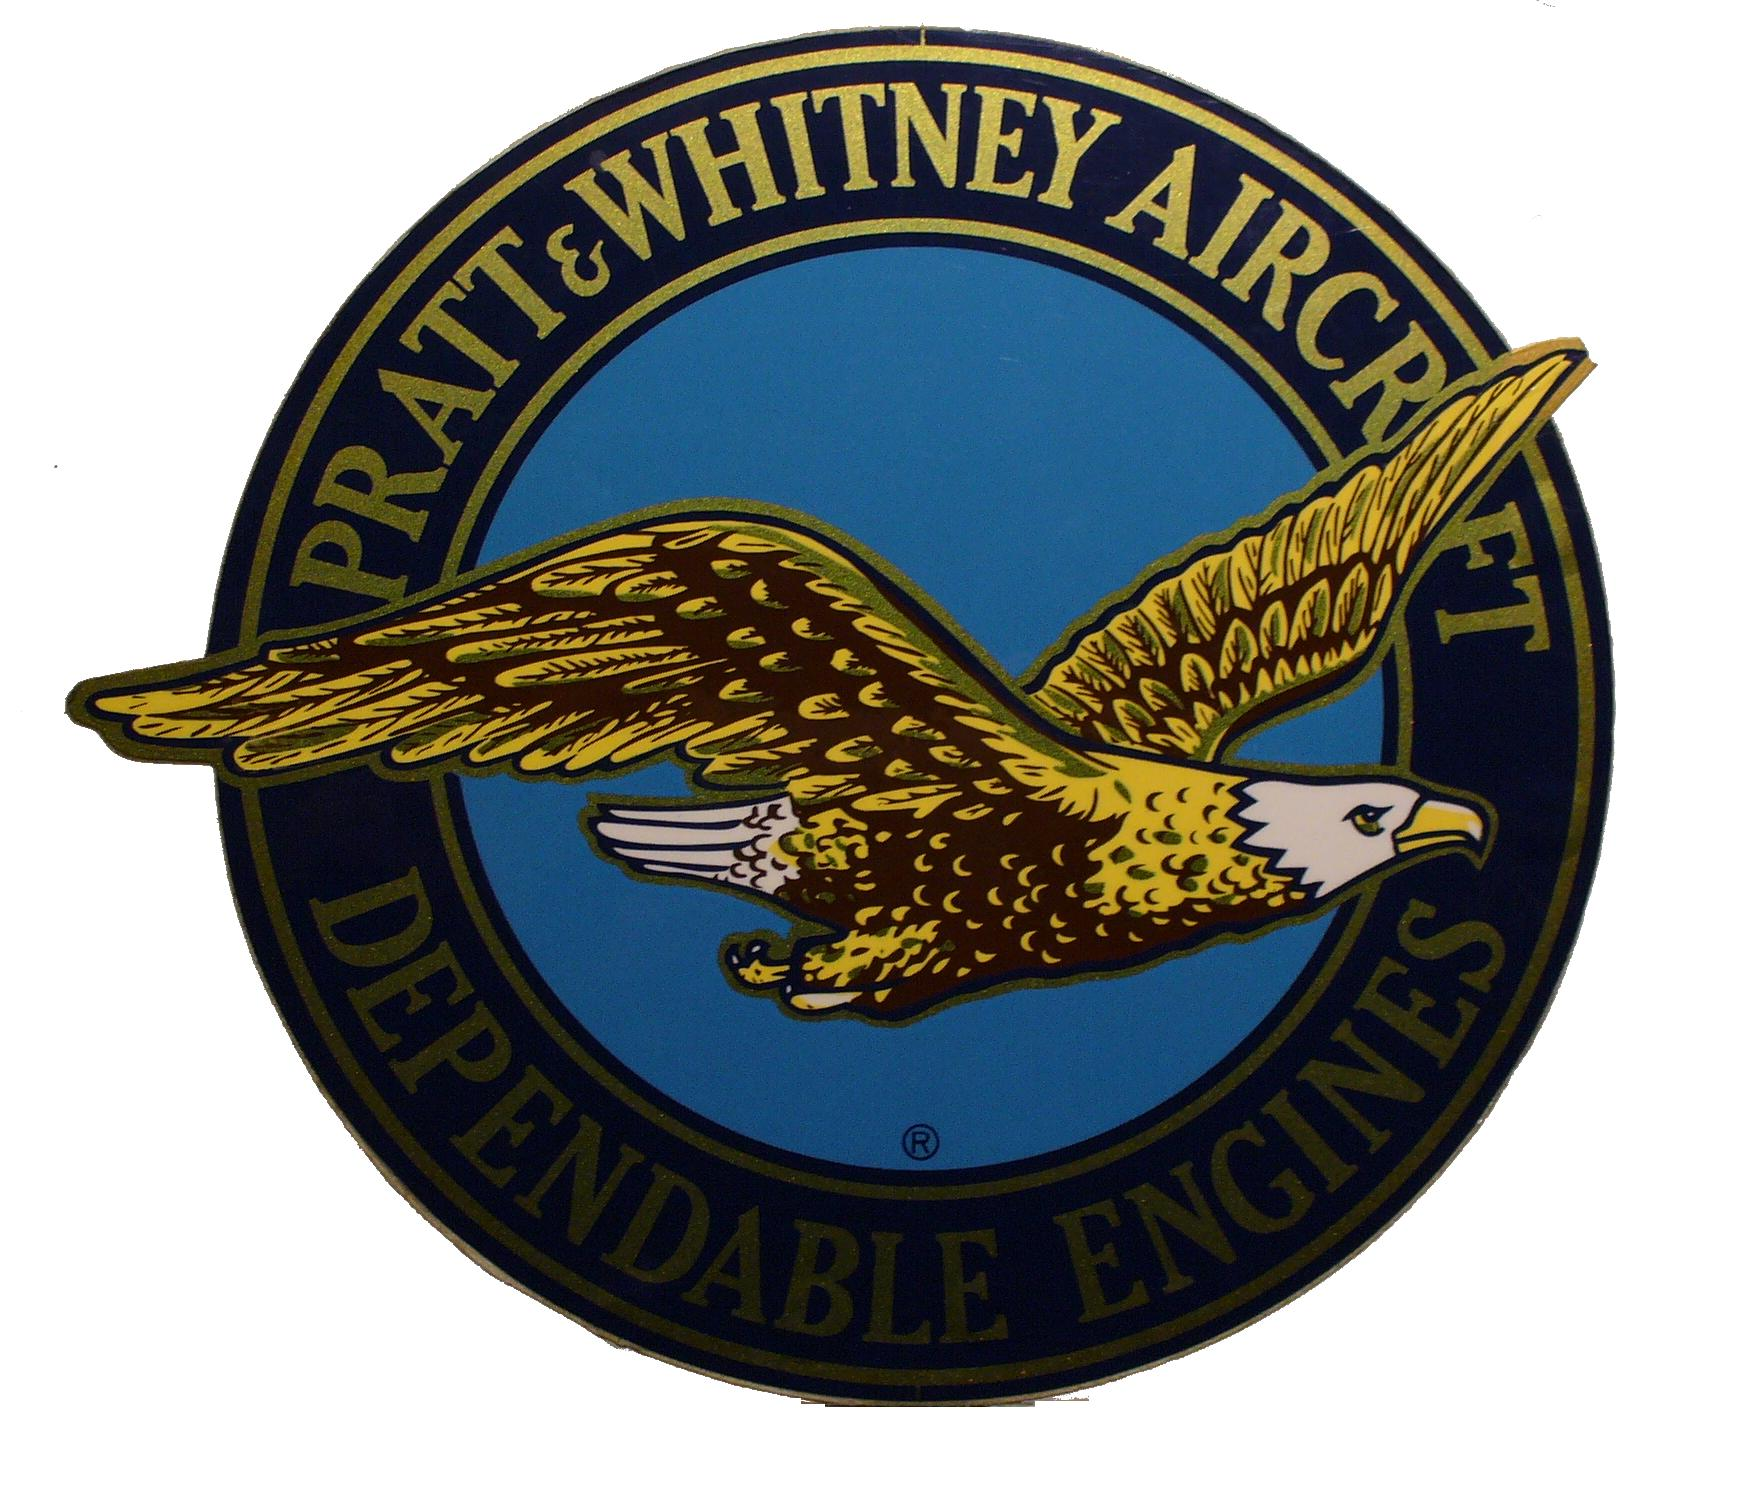 File:Pratt whitney.jpg.